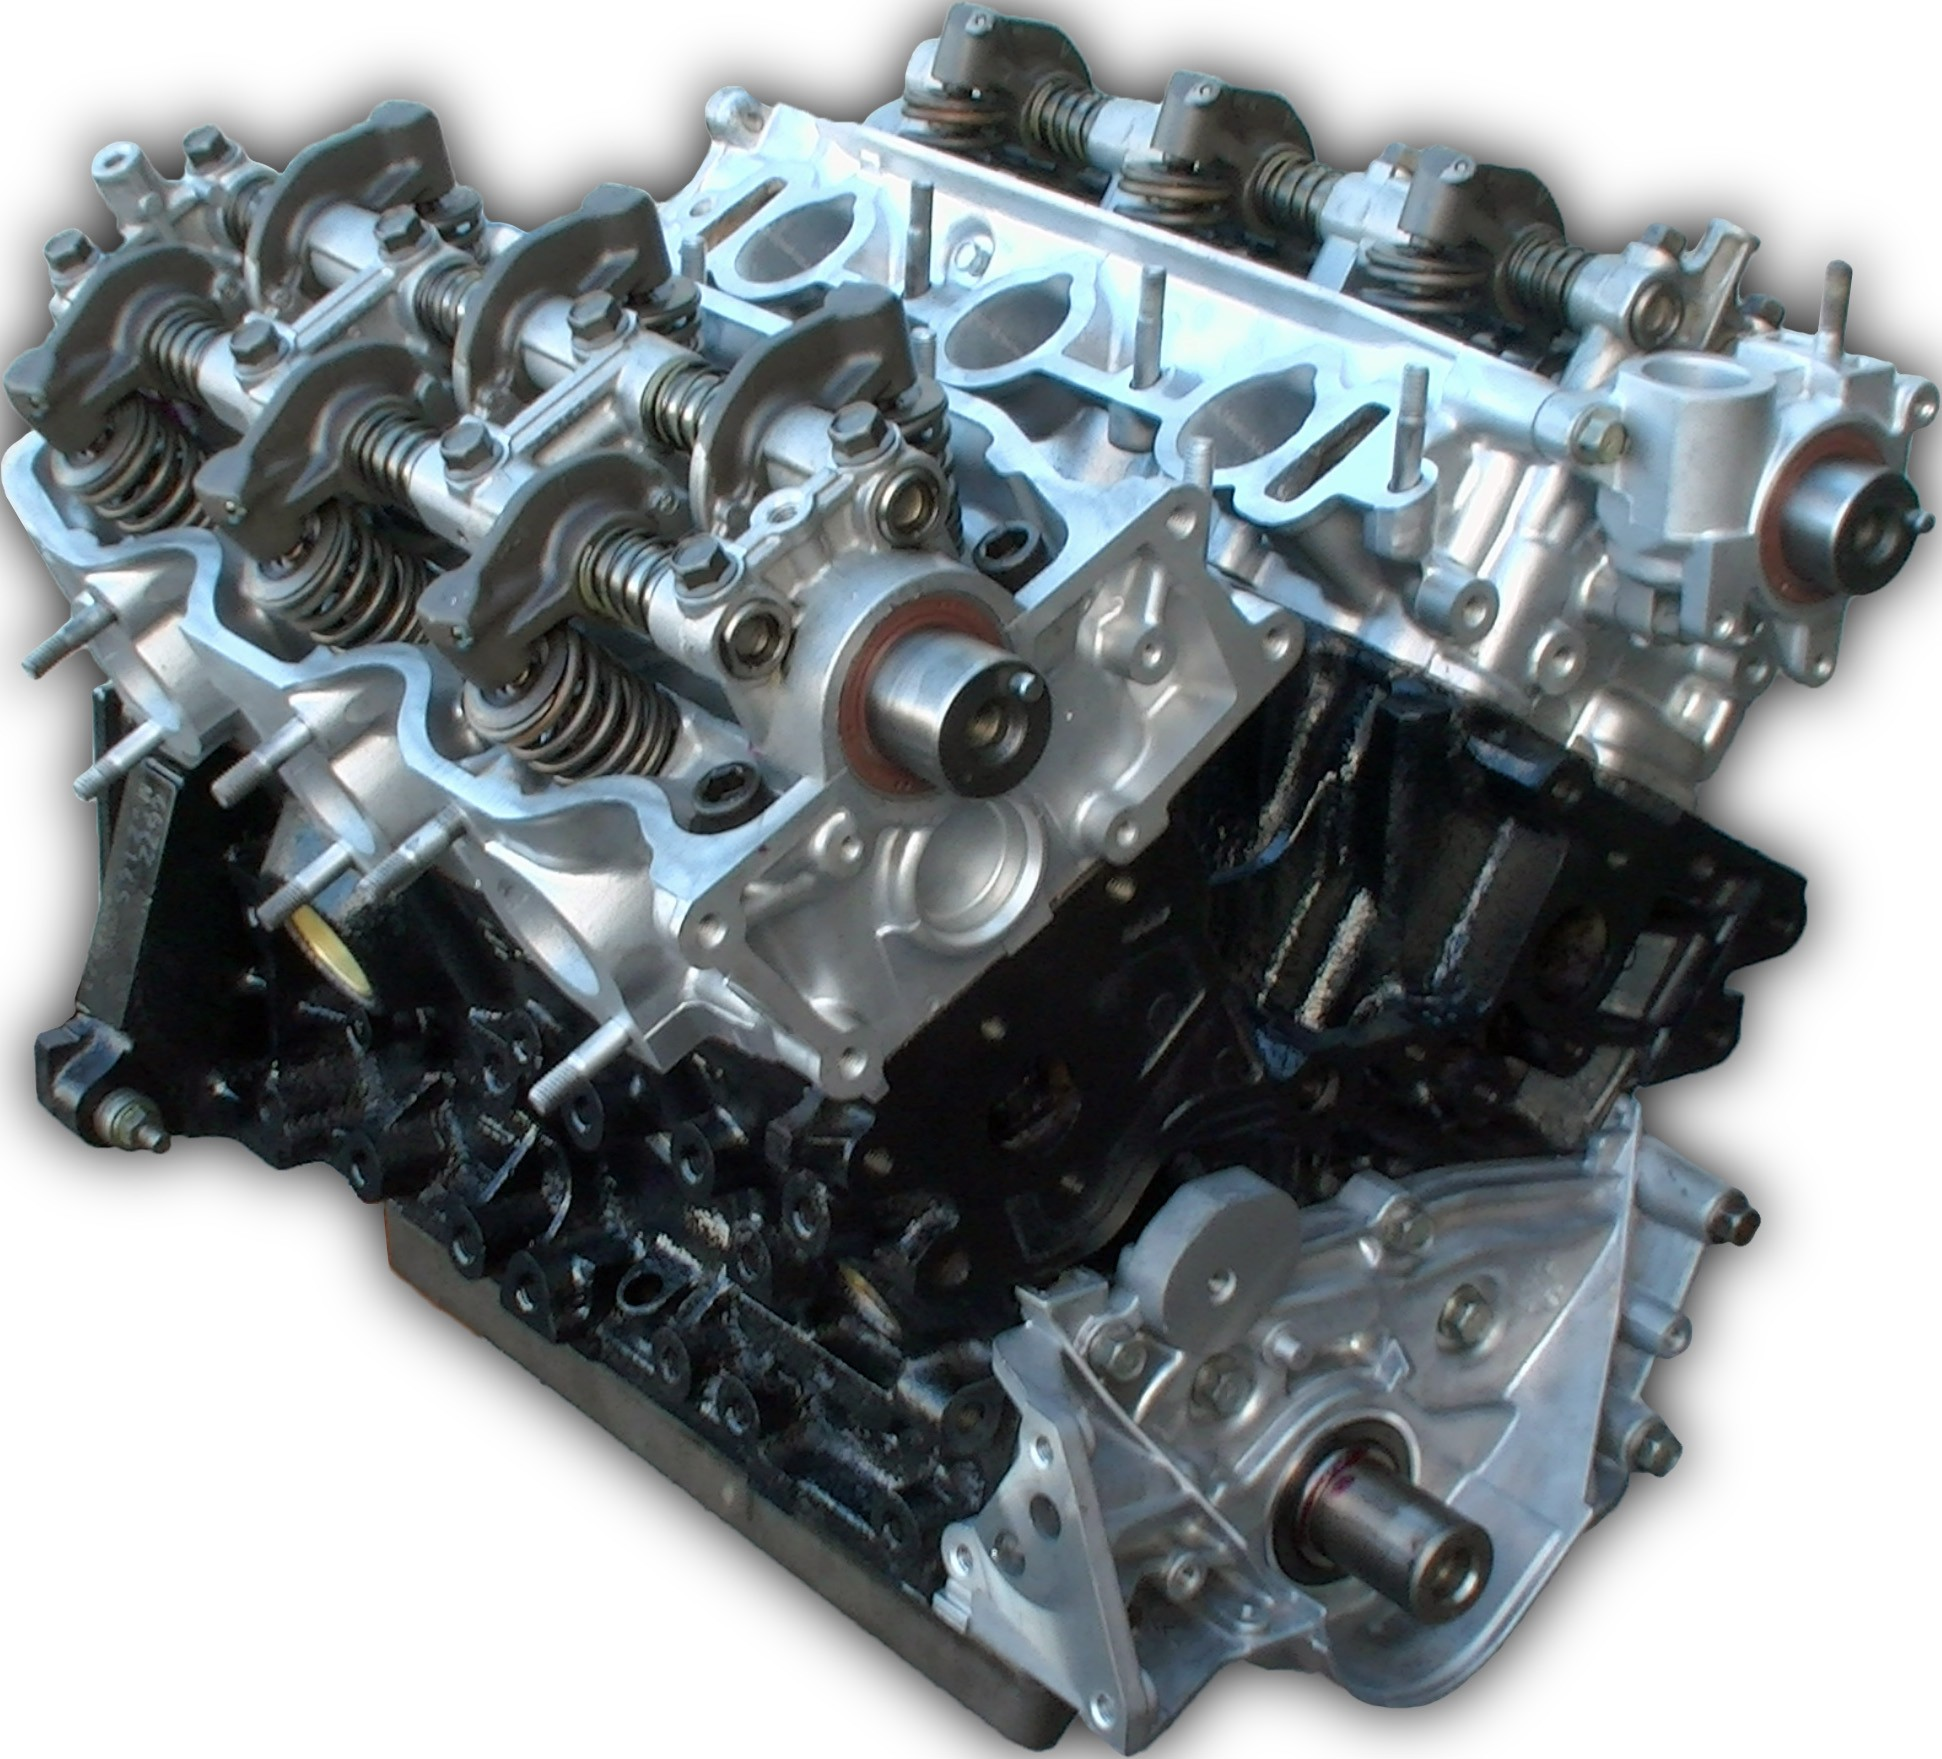 V Type Engine Diagram Starting Know About Wiring 3ld1 Isuzu Rebuilt 89 Dodge Raider 3 0l V6 U00ab Kar King Auto